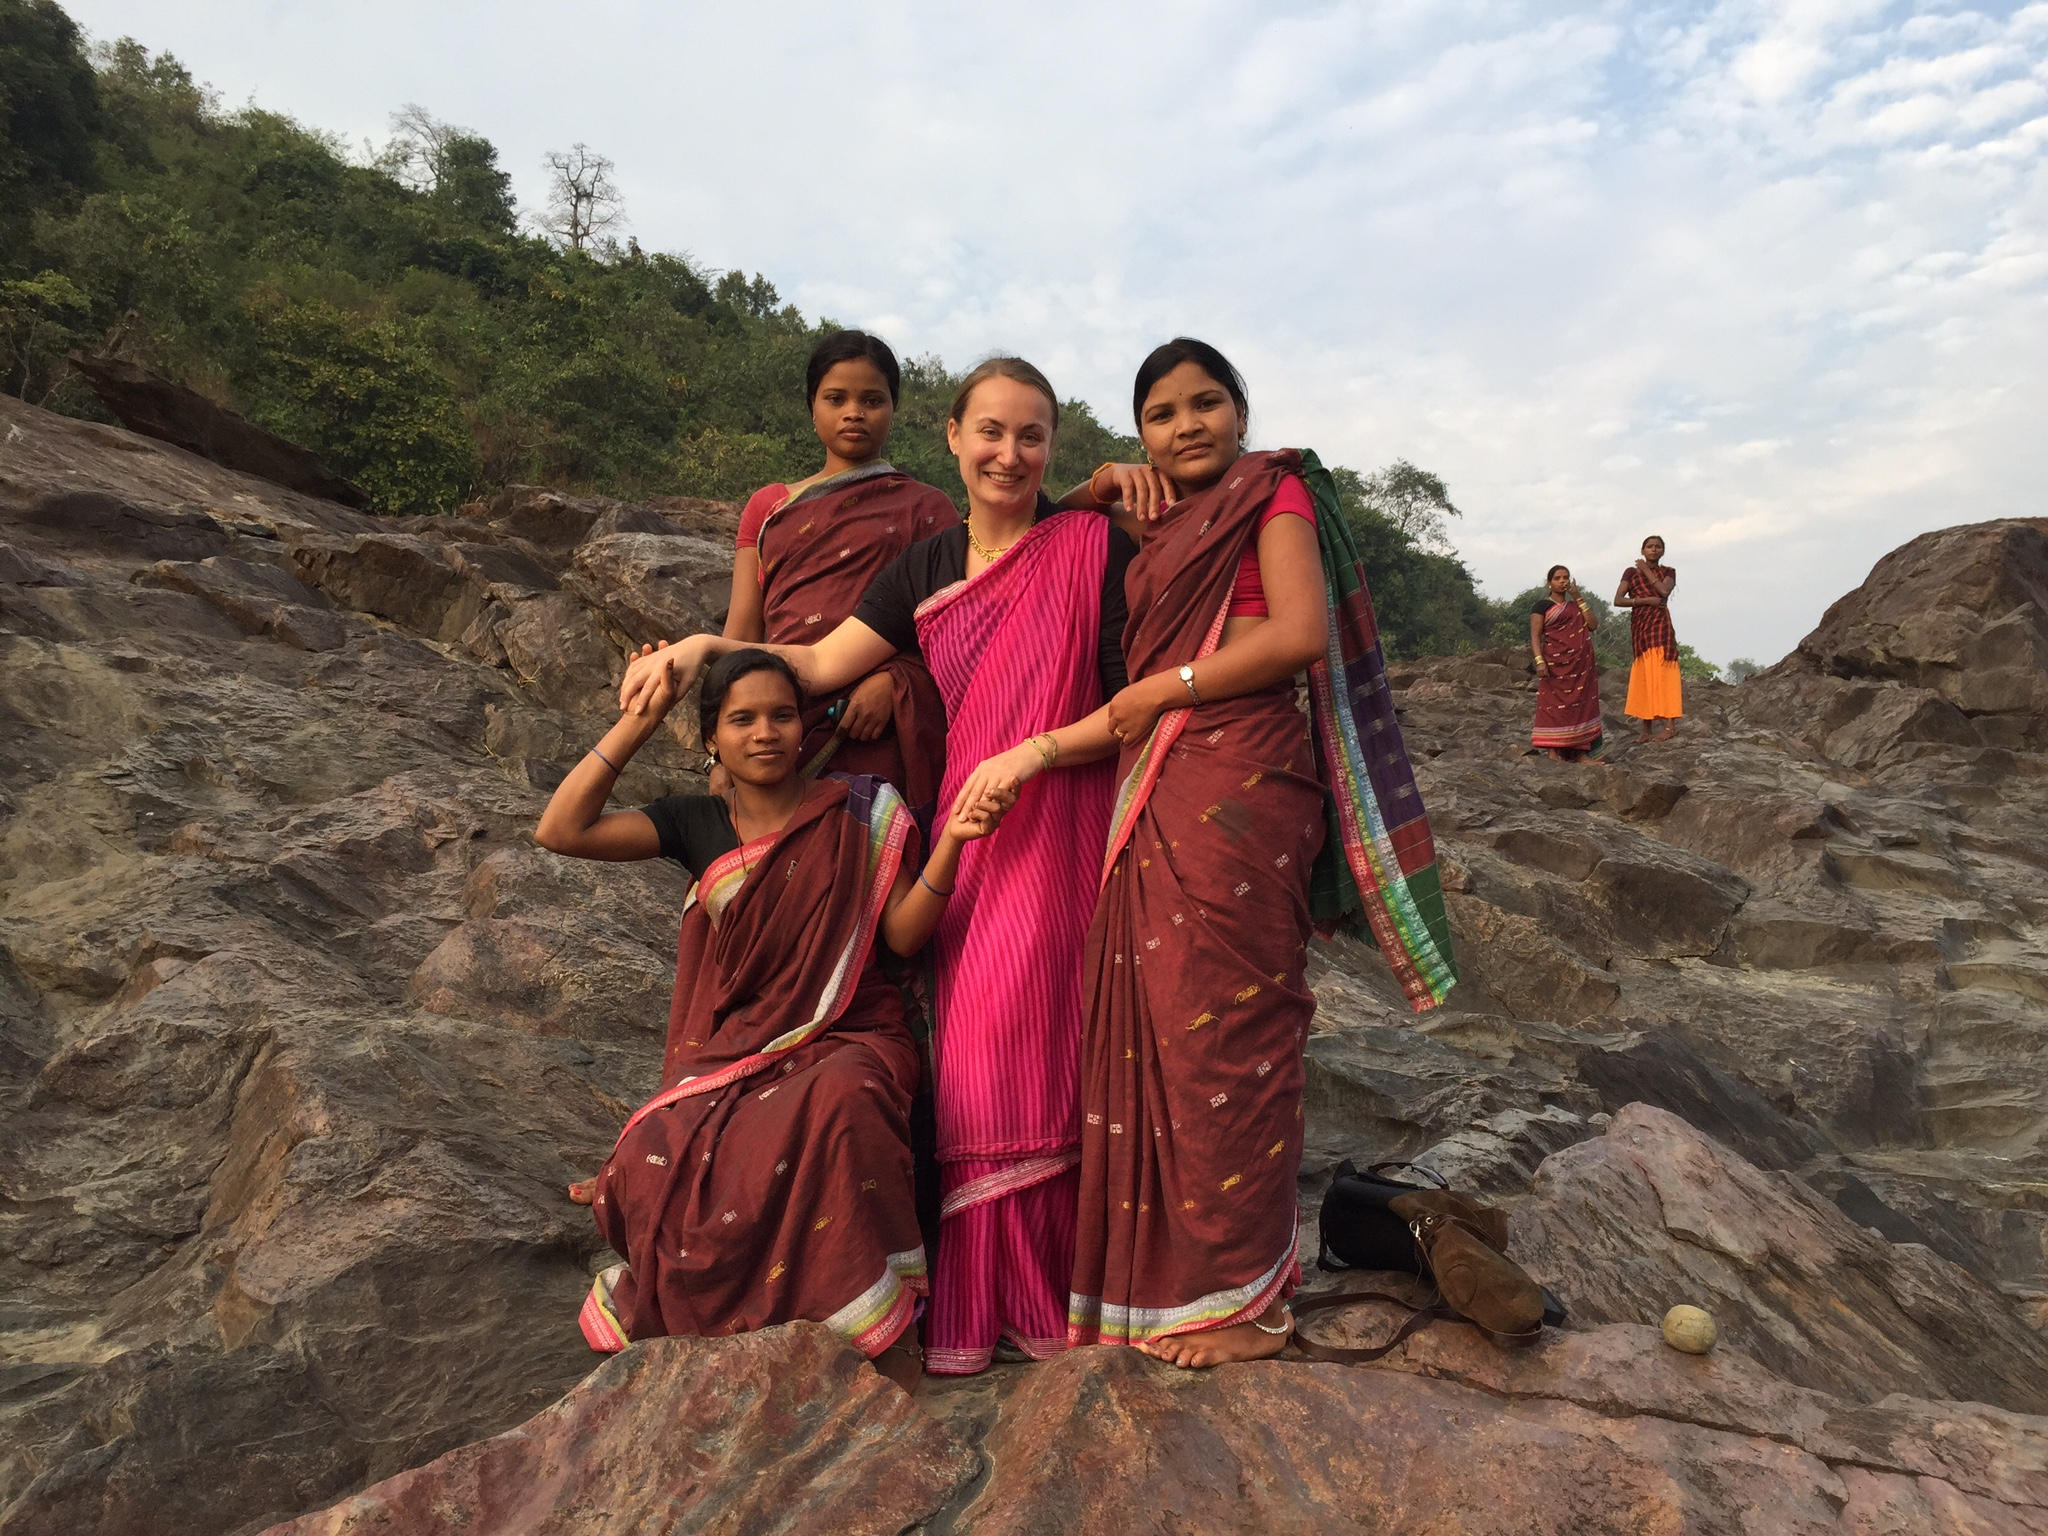 scope of ecotourism in india Ecotourism is a form of tourism involving visiting fragile, pristine, and relatively undisturbed natural areas, intended as a low-impact and often small scale alternative to standard commercial mass tourism.